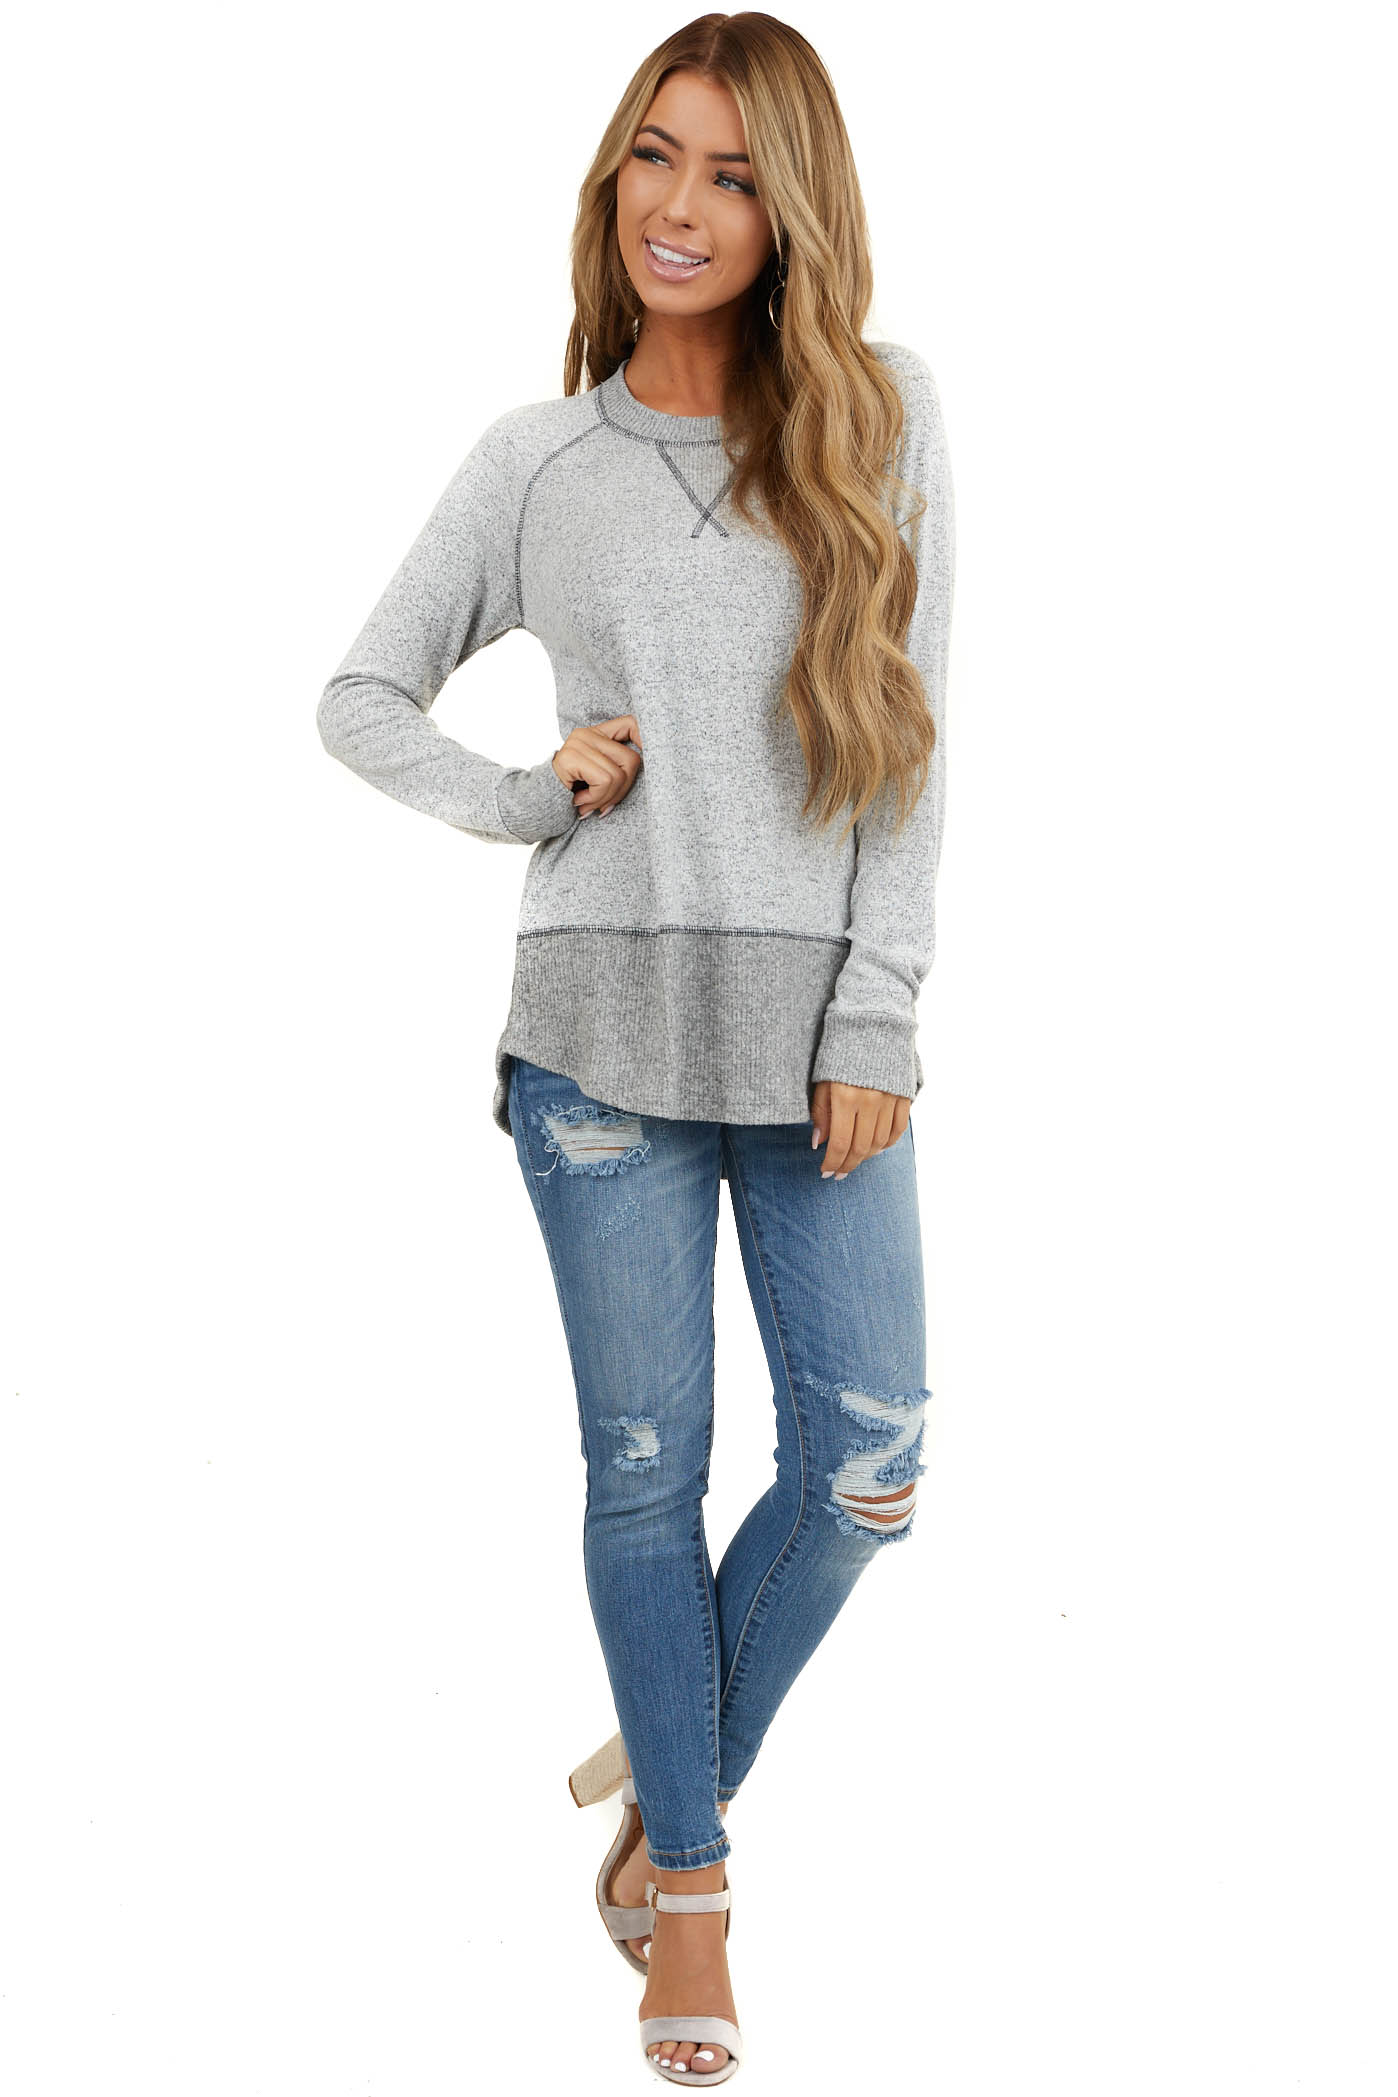 Heathered Grey Long Sleeve Knit Top with Contrasting Details